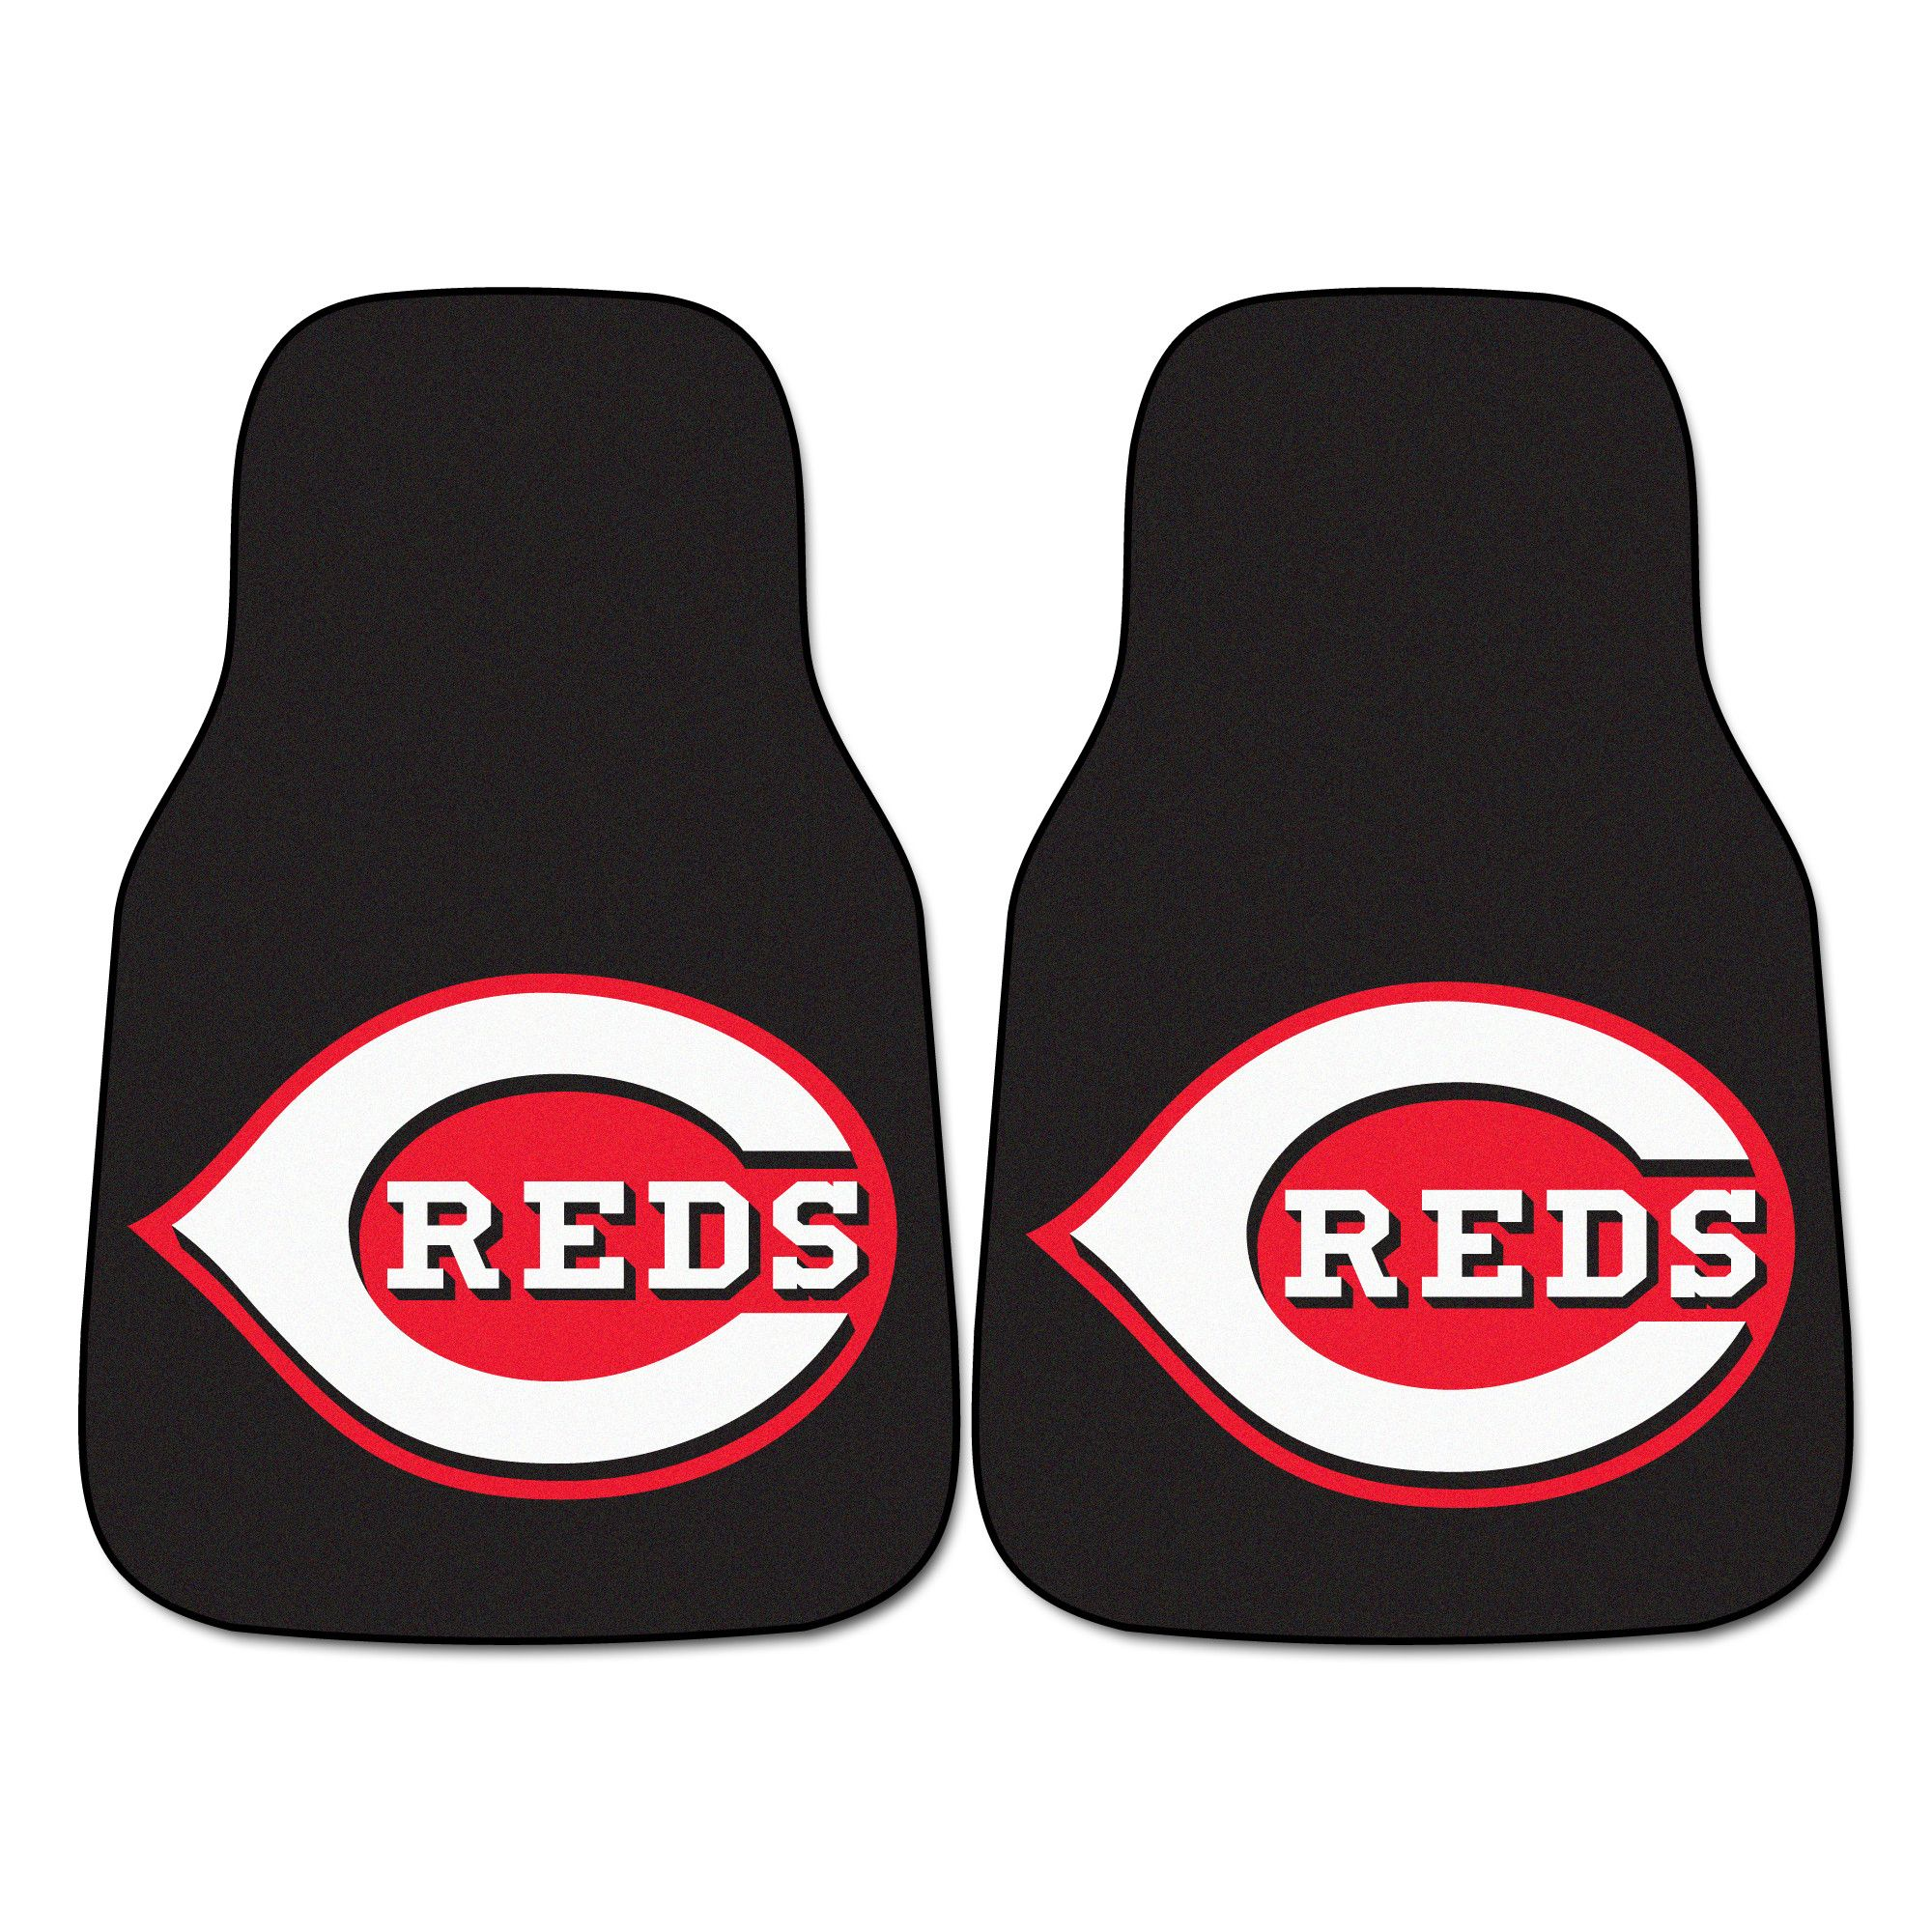 "Cincinnati Reds 2-piece Carpeted Car Mats 17x27 - Protect your vehicle's flooring while showing your team pride with car mats by FANMATS. 100% nylon face with non-skid vinyl backing. Universal fit makes it ideal for cars, trucks, SUVs, and RVs. The officially licensed mat is chromojet printed in true team colors and designed with a large team logo. Made in USA.FANMATS Series: CARCARPTeam Series: MLB - Cincinnati RedsProduct Dimensions: 17""x27""Shipping Dimensions: 27""x18""x0.5"". Gifts…"